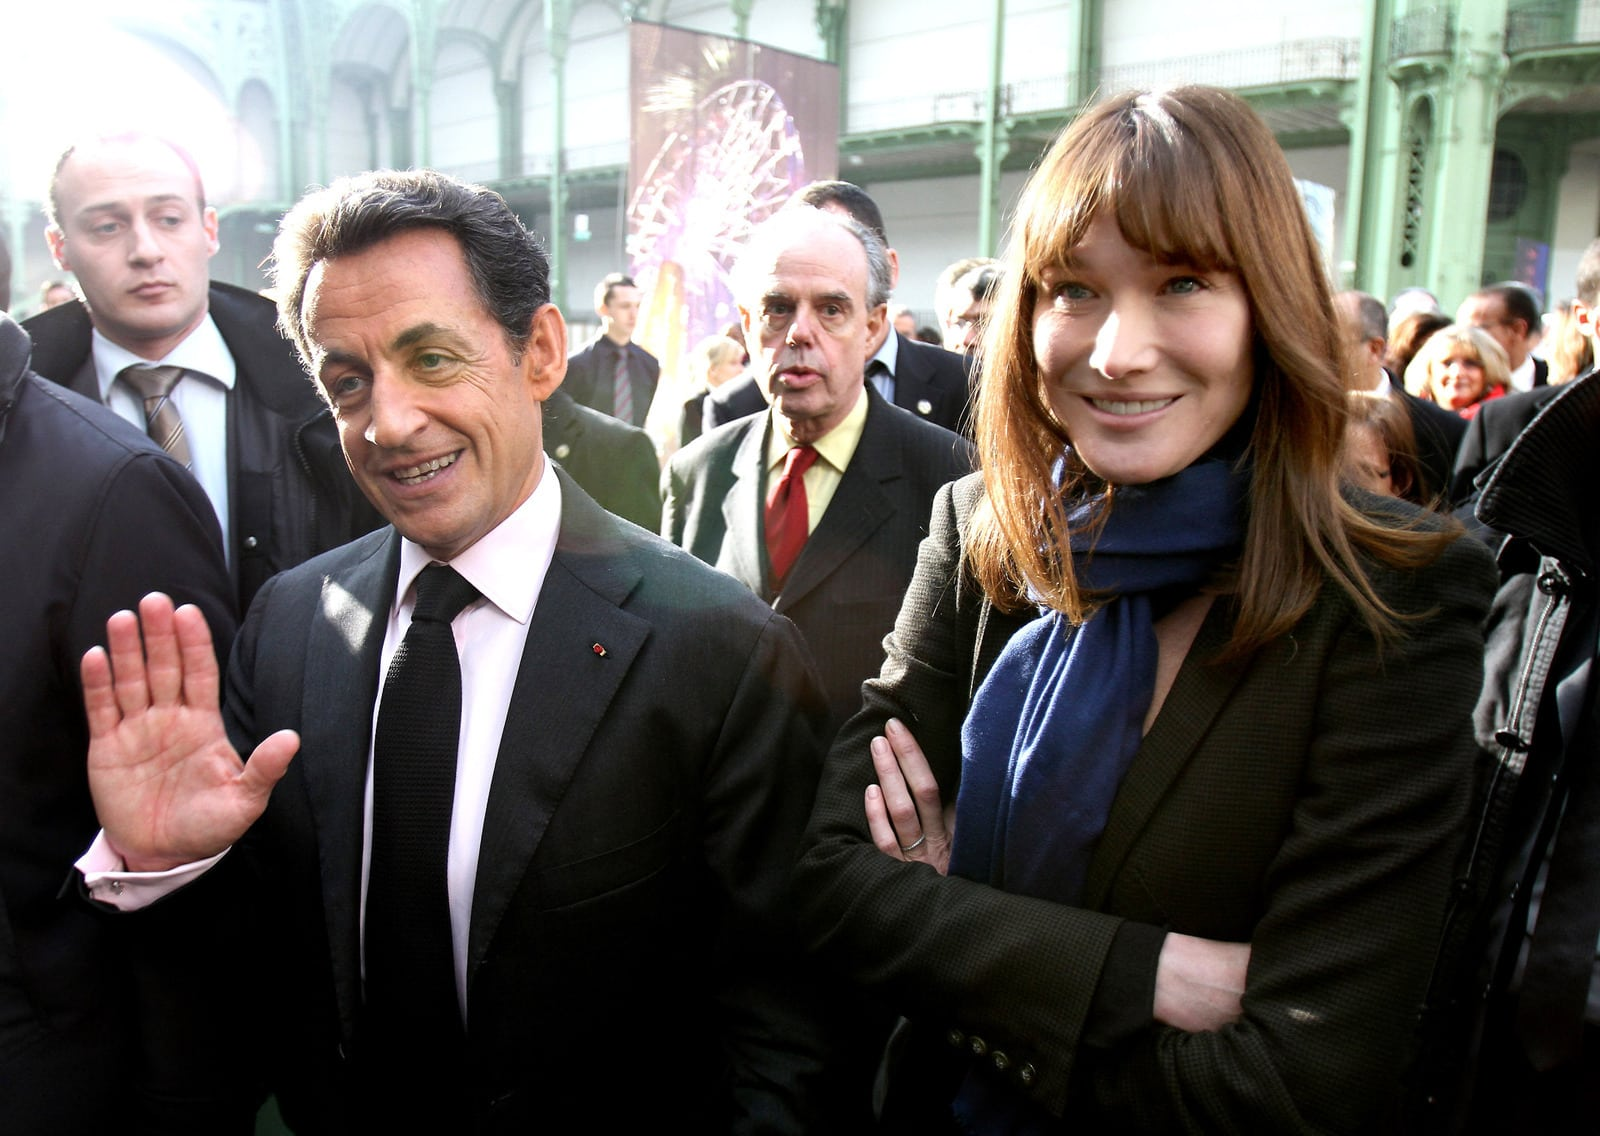 Carla Bruni and Nicolas Sarkozy became parents 15.10.2011 36